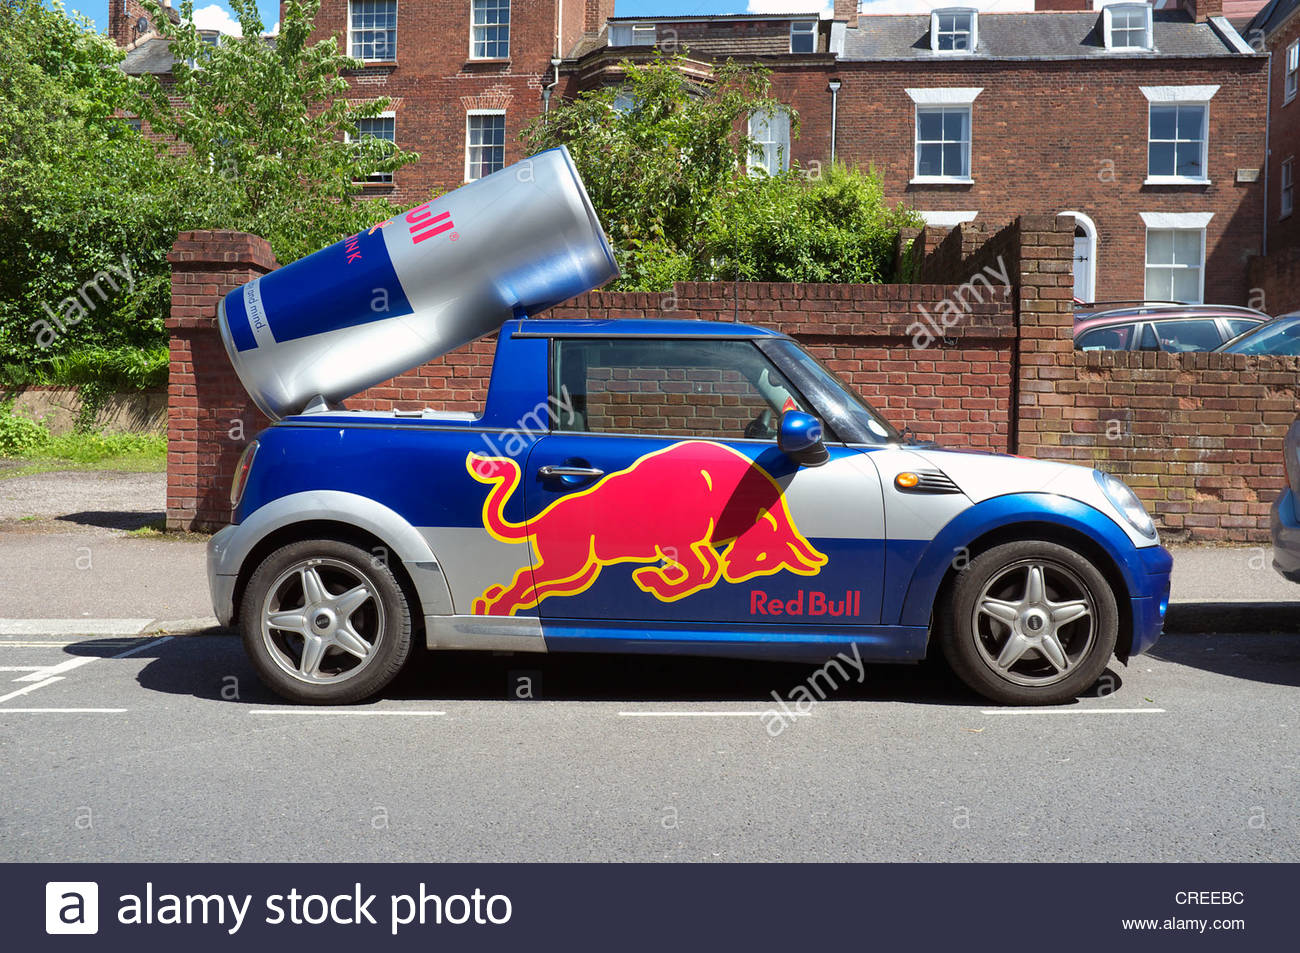 A Red Bull Mini Car Promotional Vehicle In Exeter Uk Stock Photo